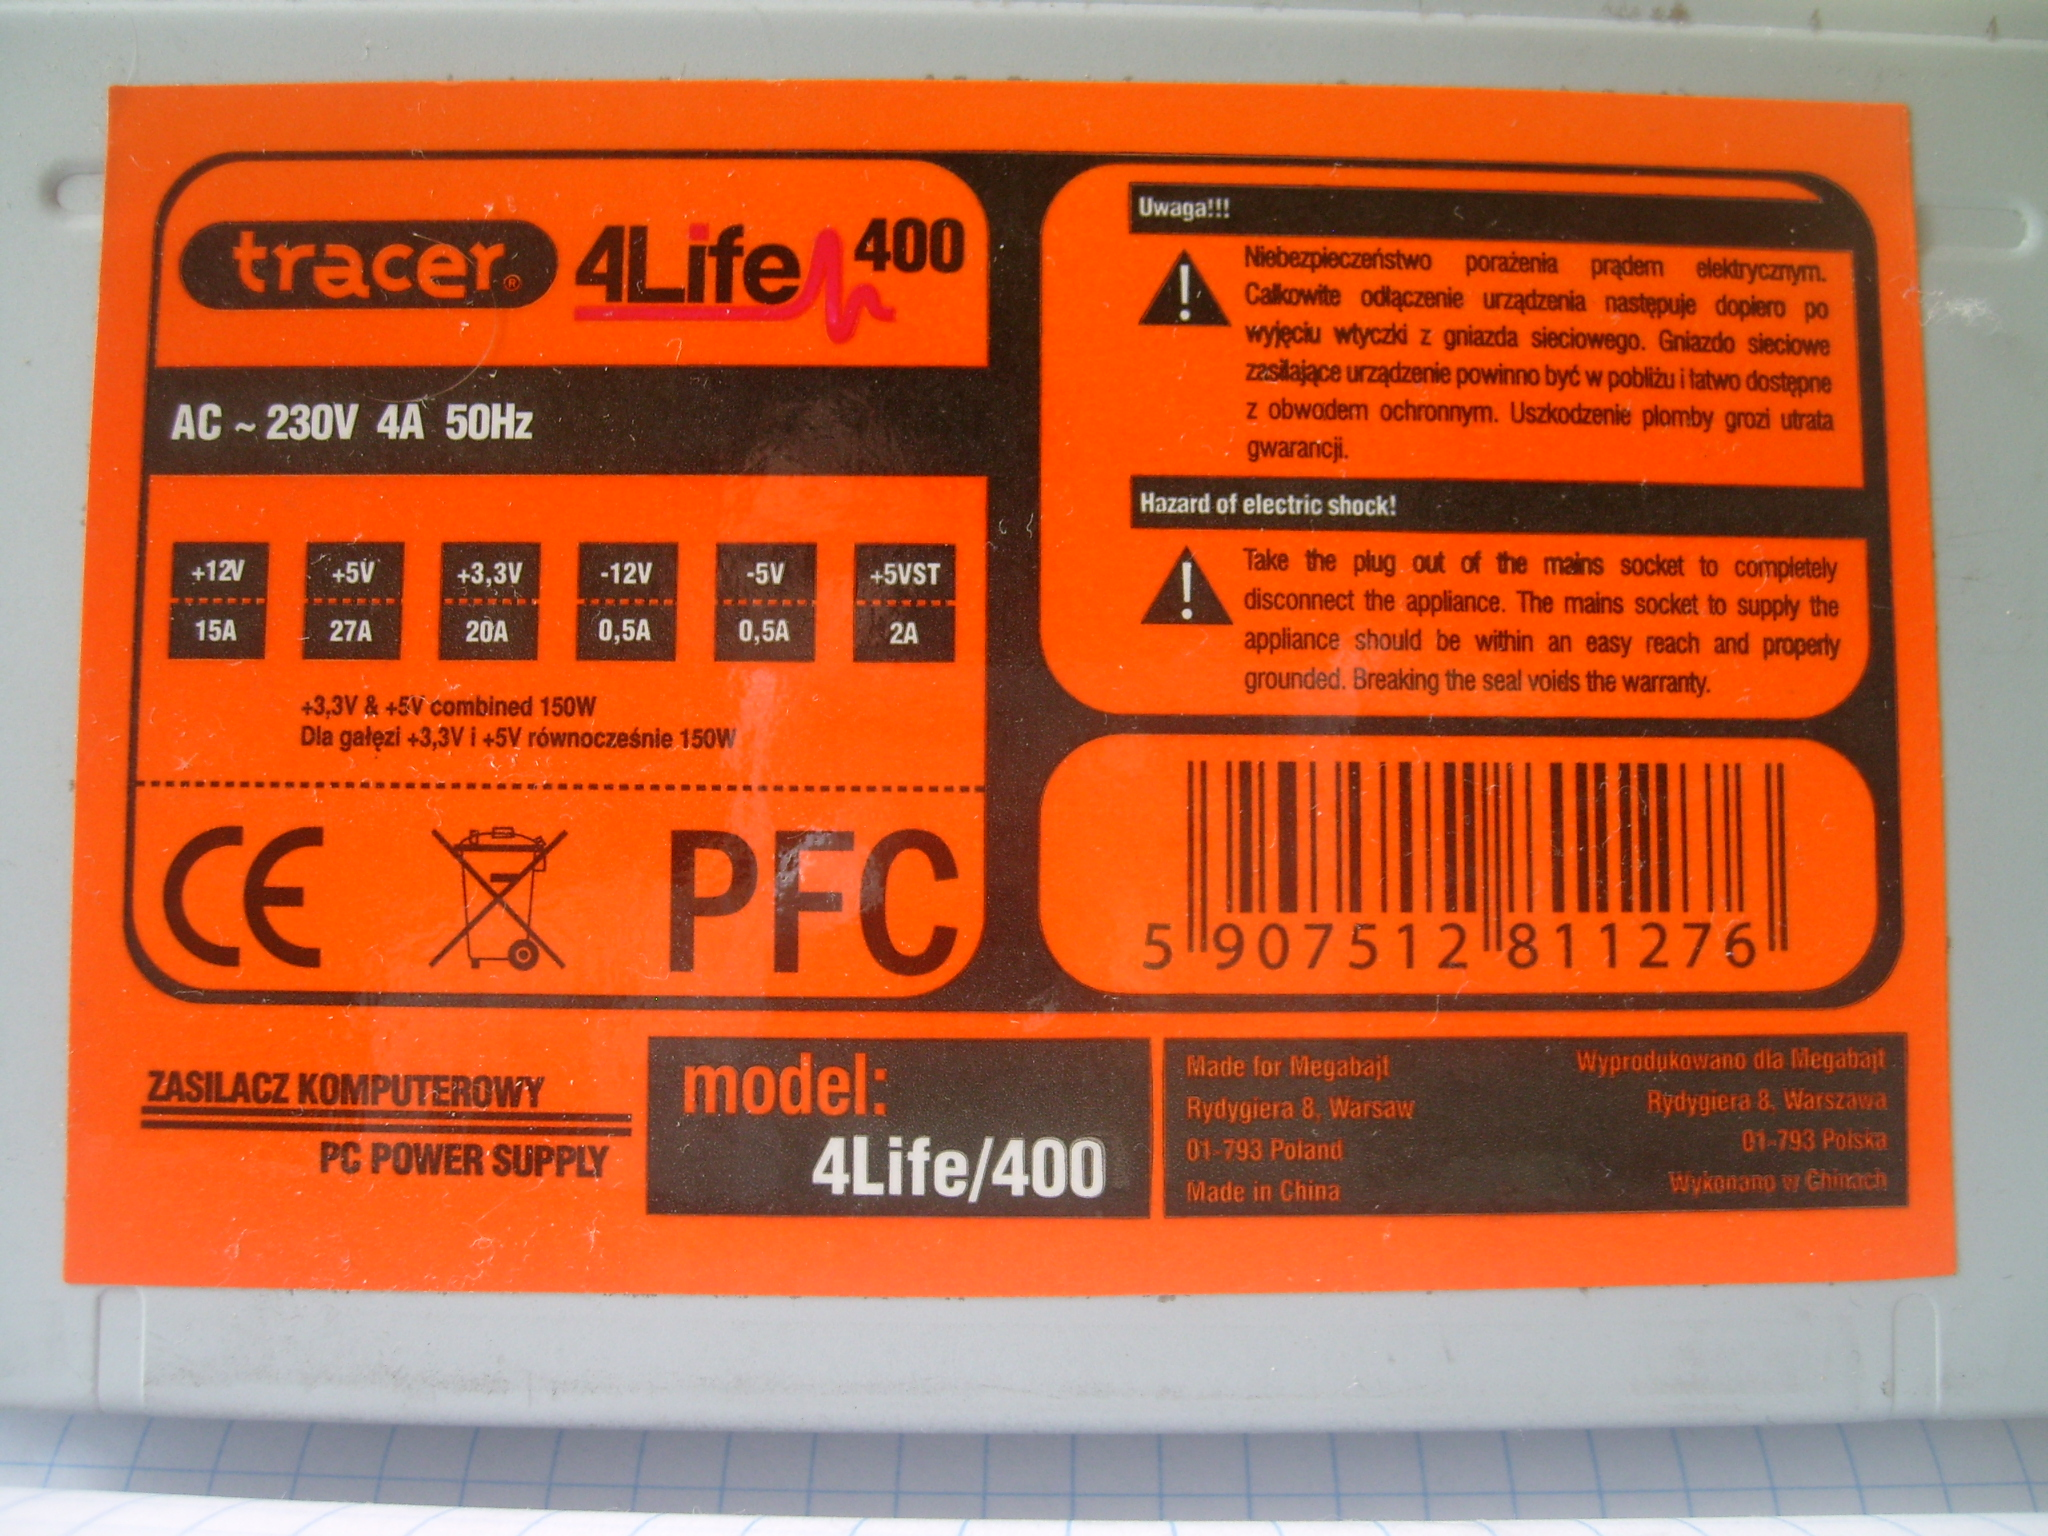 Tracer model: 4Life400 - Napi�cia spadaj� do zera